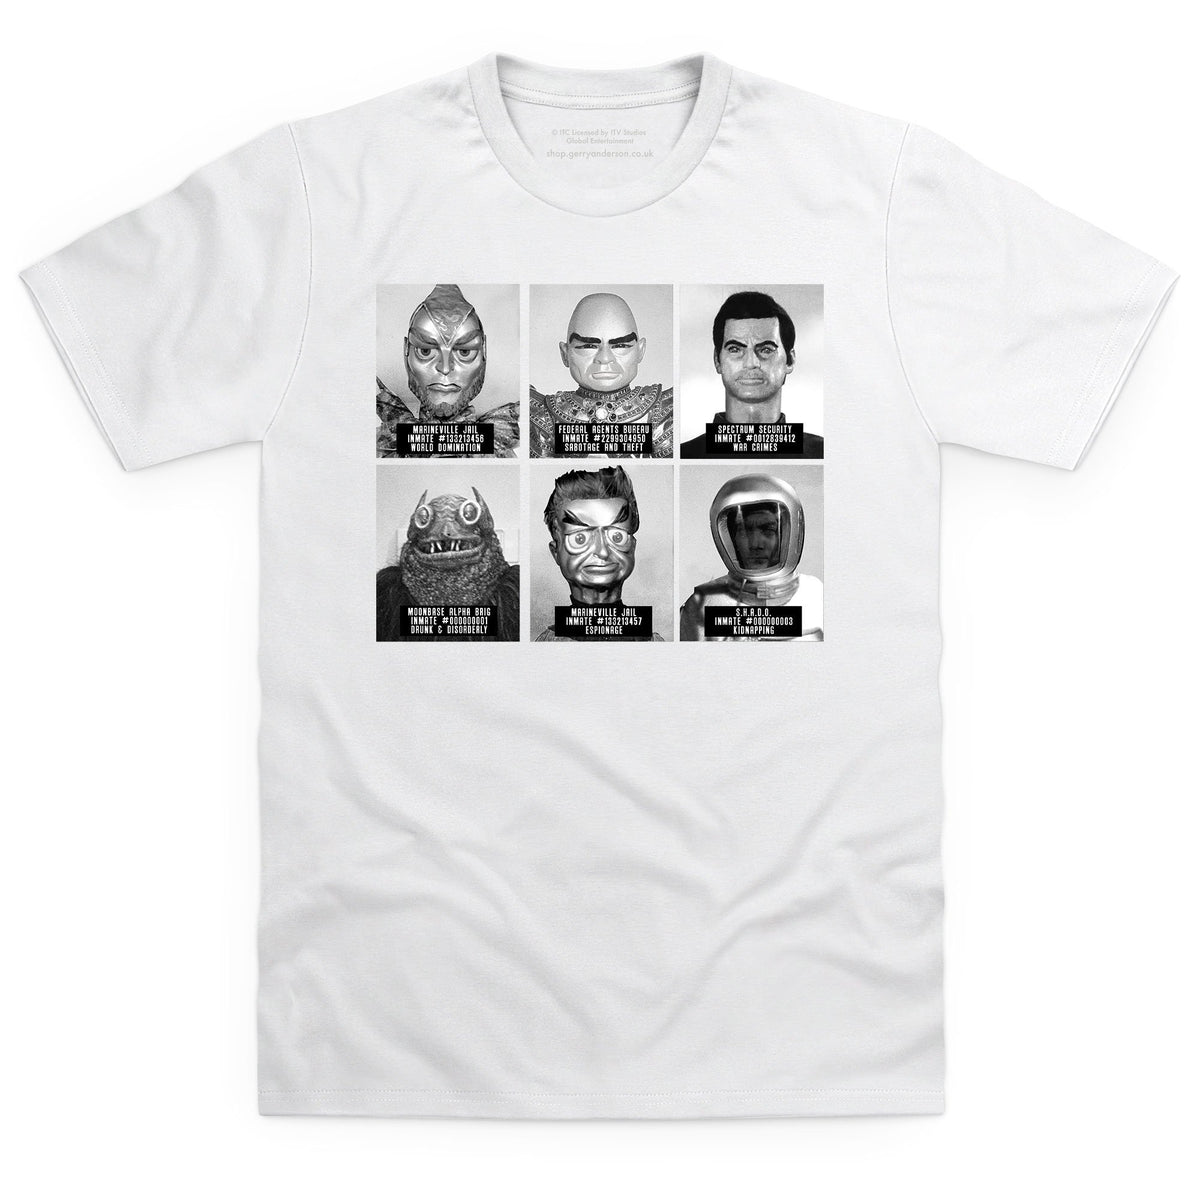 Suspects and Villains Kid's White T-shirt [Official & Exclusive] - The Gerry Anderson Store